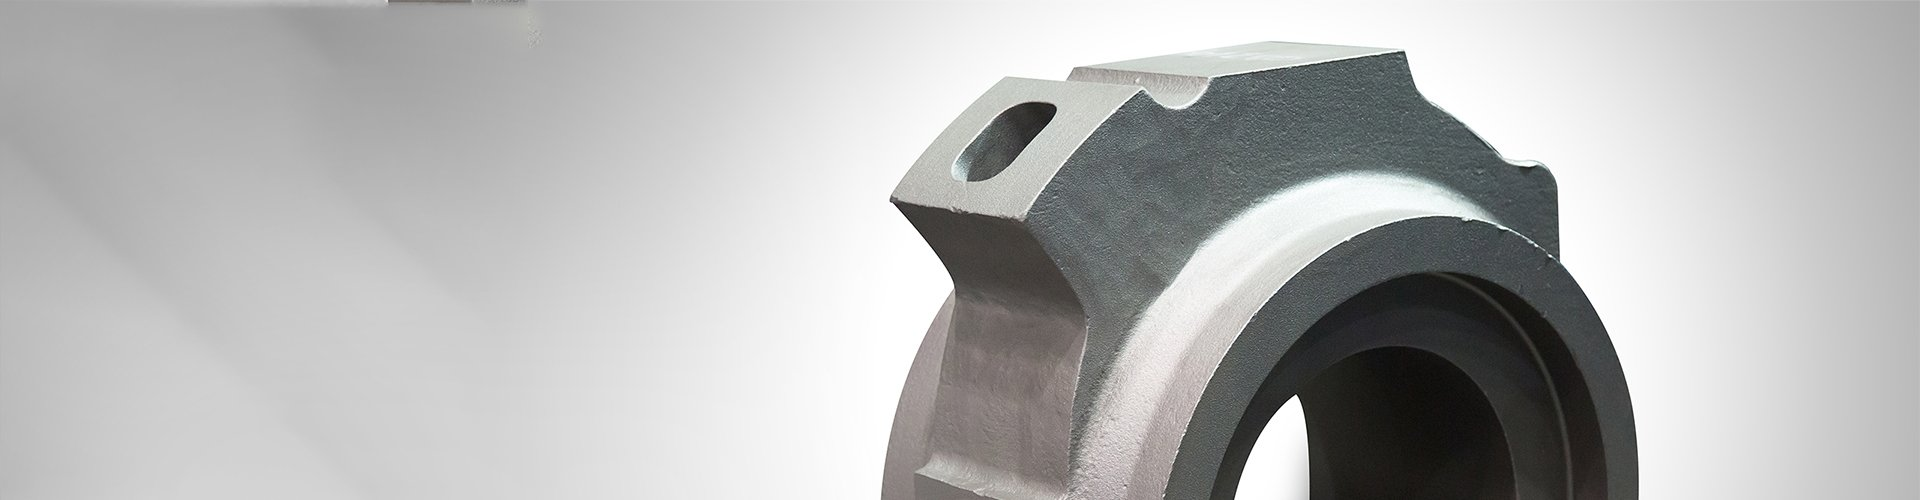 Casting with coating for mechanical processing